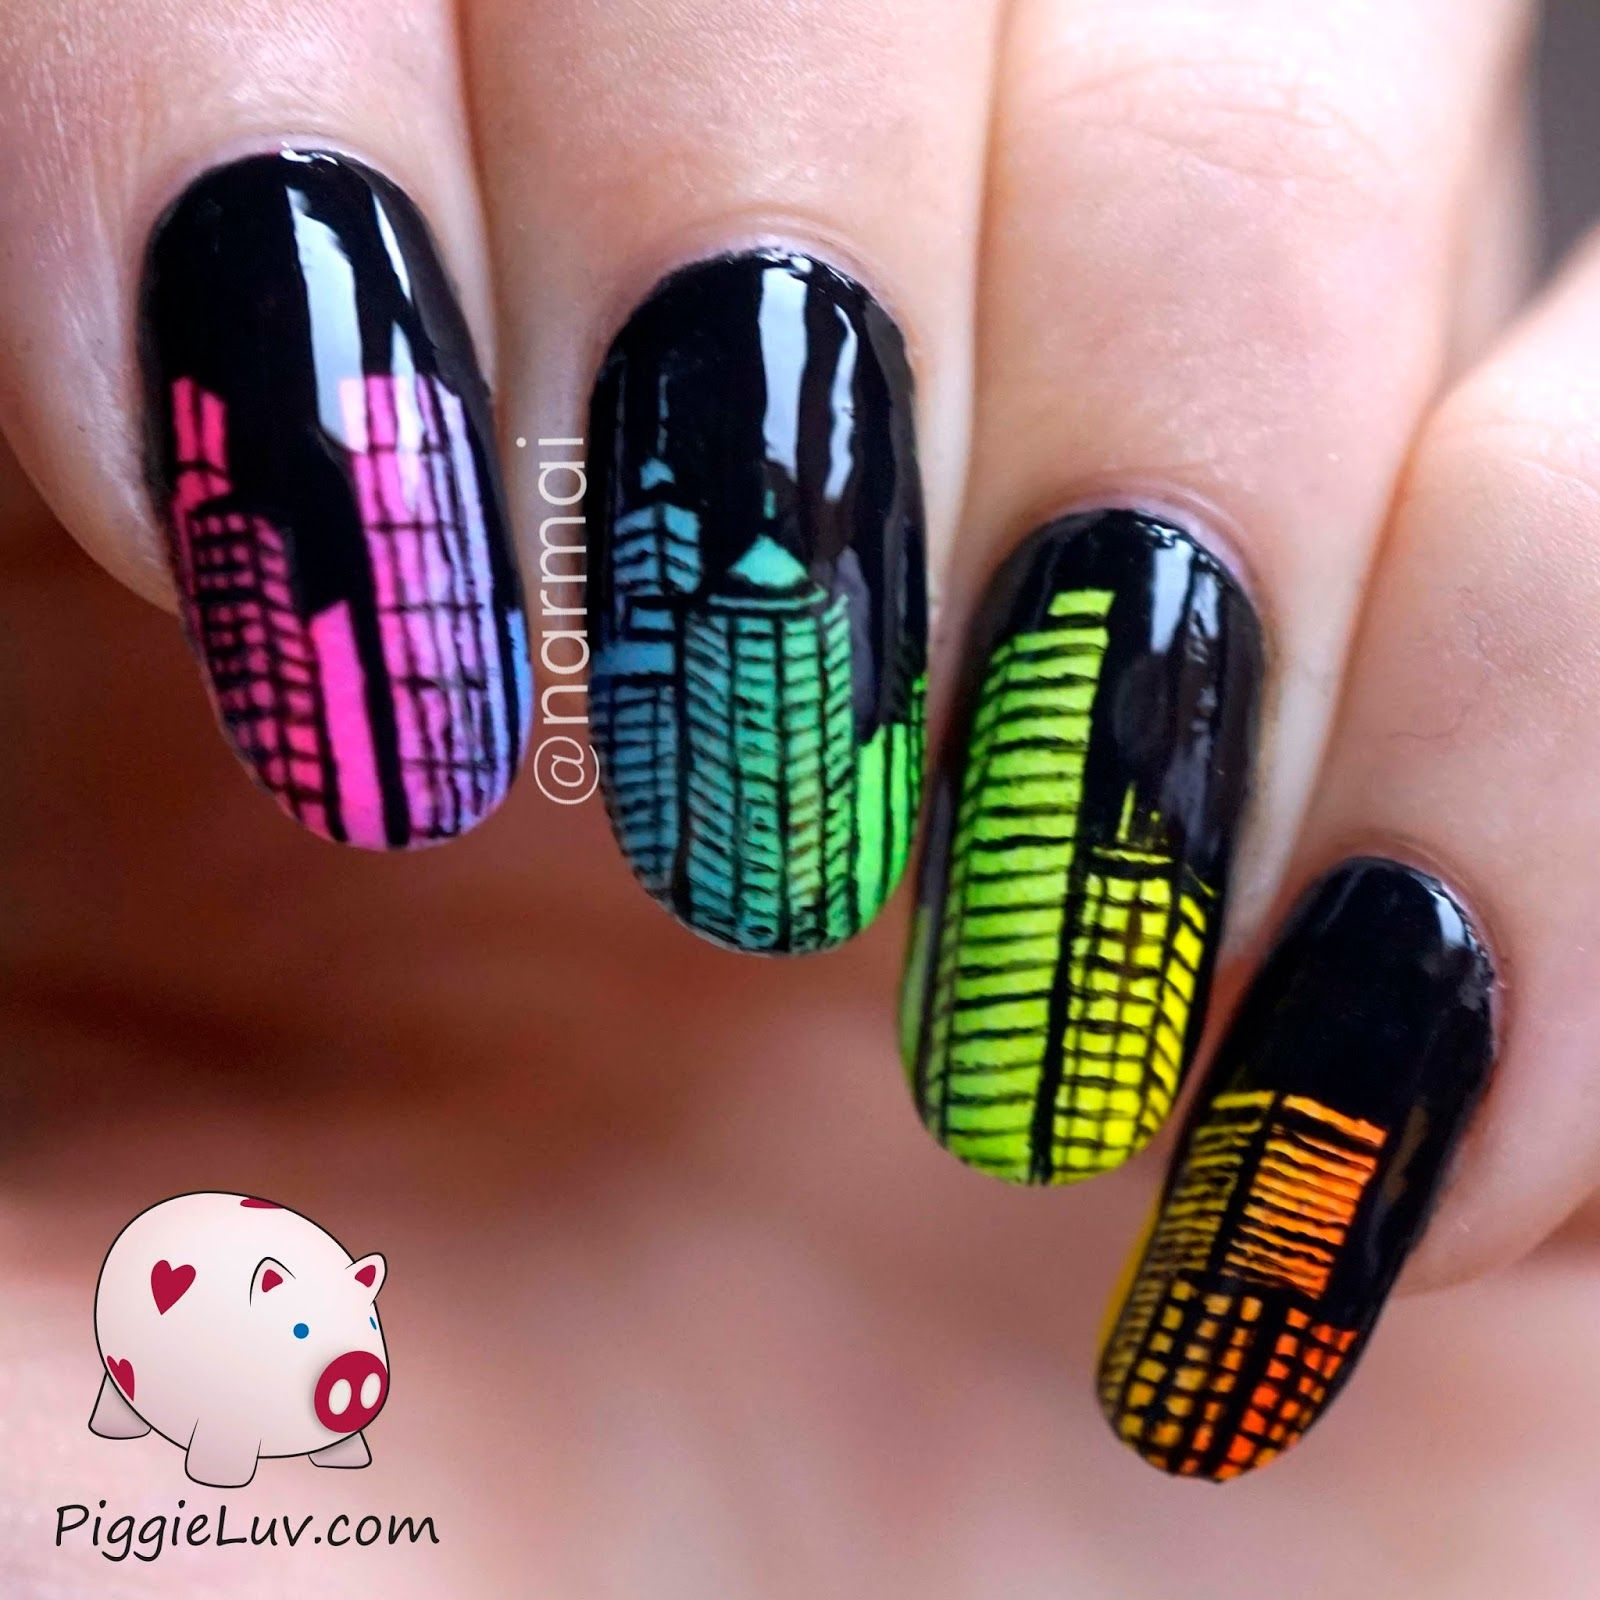 Glow in the dark city skyline nail art dark city nails and nail art beauty nails prinsesfo Images